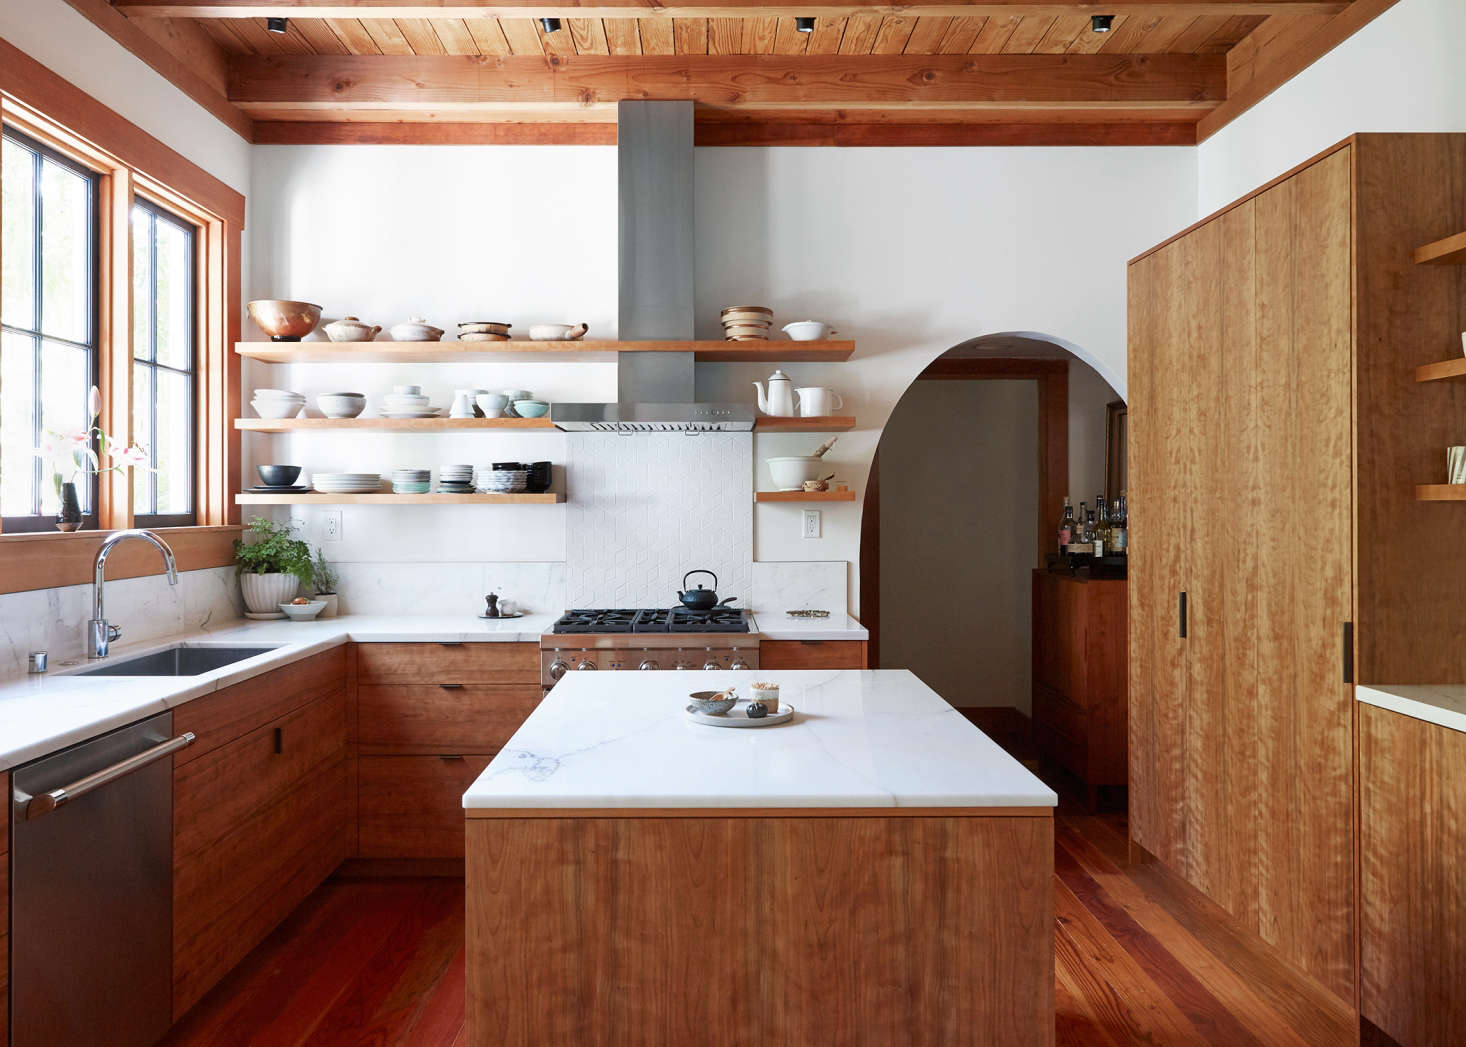 Looking Ahead Looking Back 10 Years of Remodelista One of our most popular Kitchen of the Week posts is Aya Brackett&#8\2\17;s Hippie House Update in Oakland.